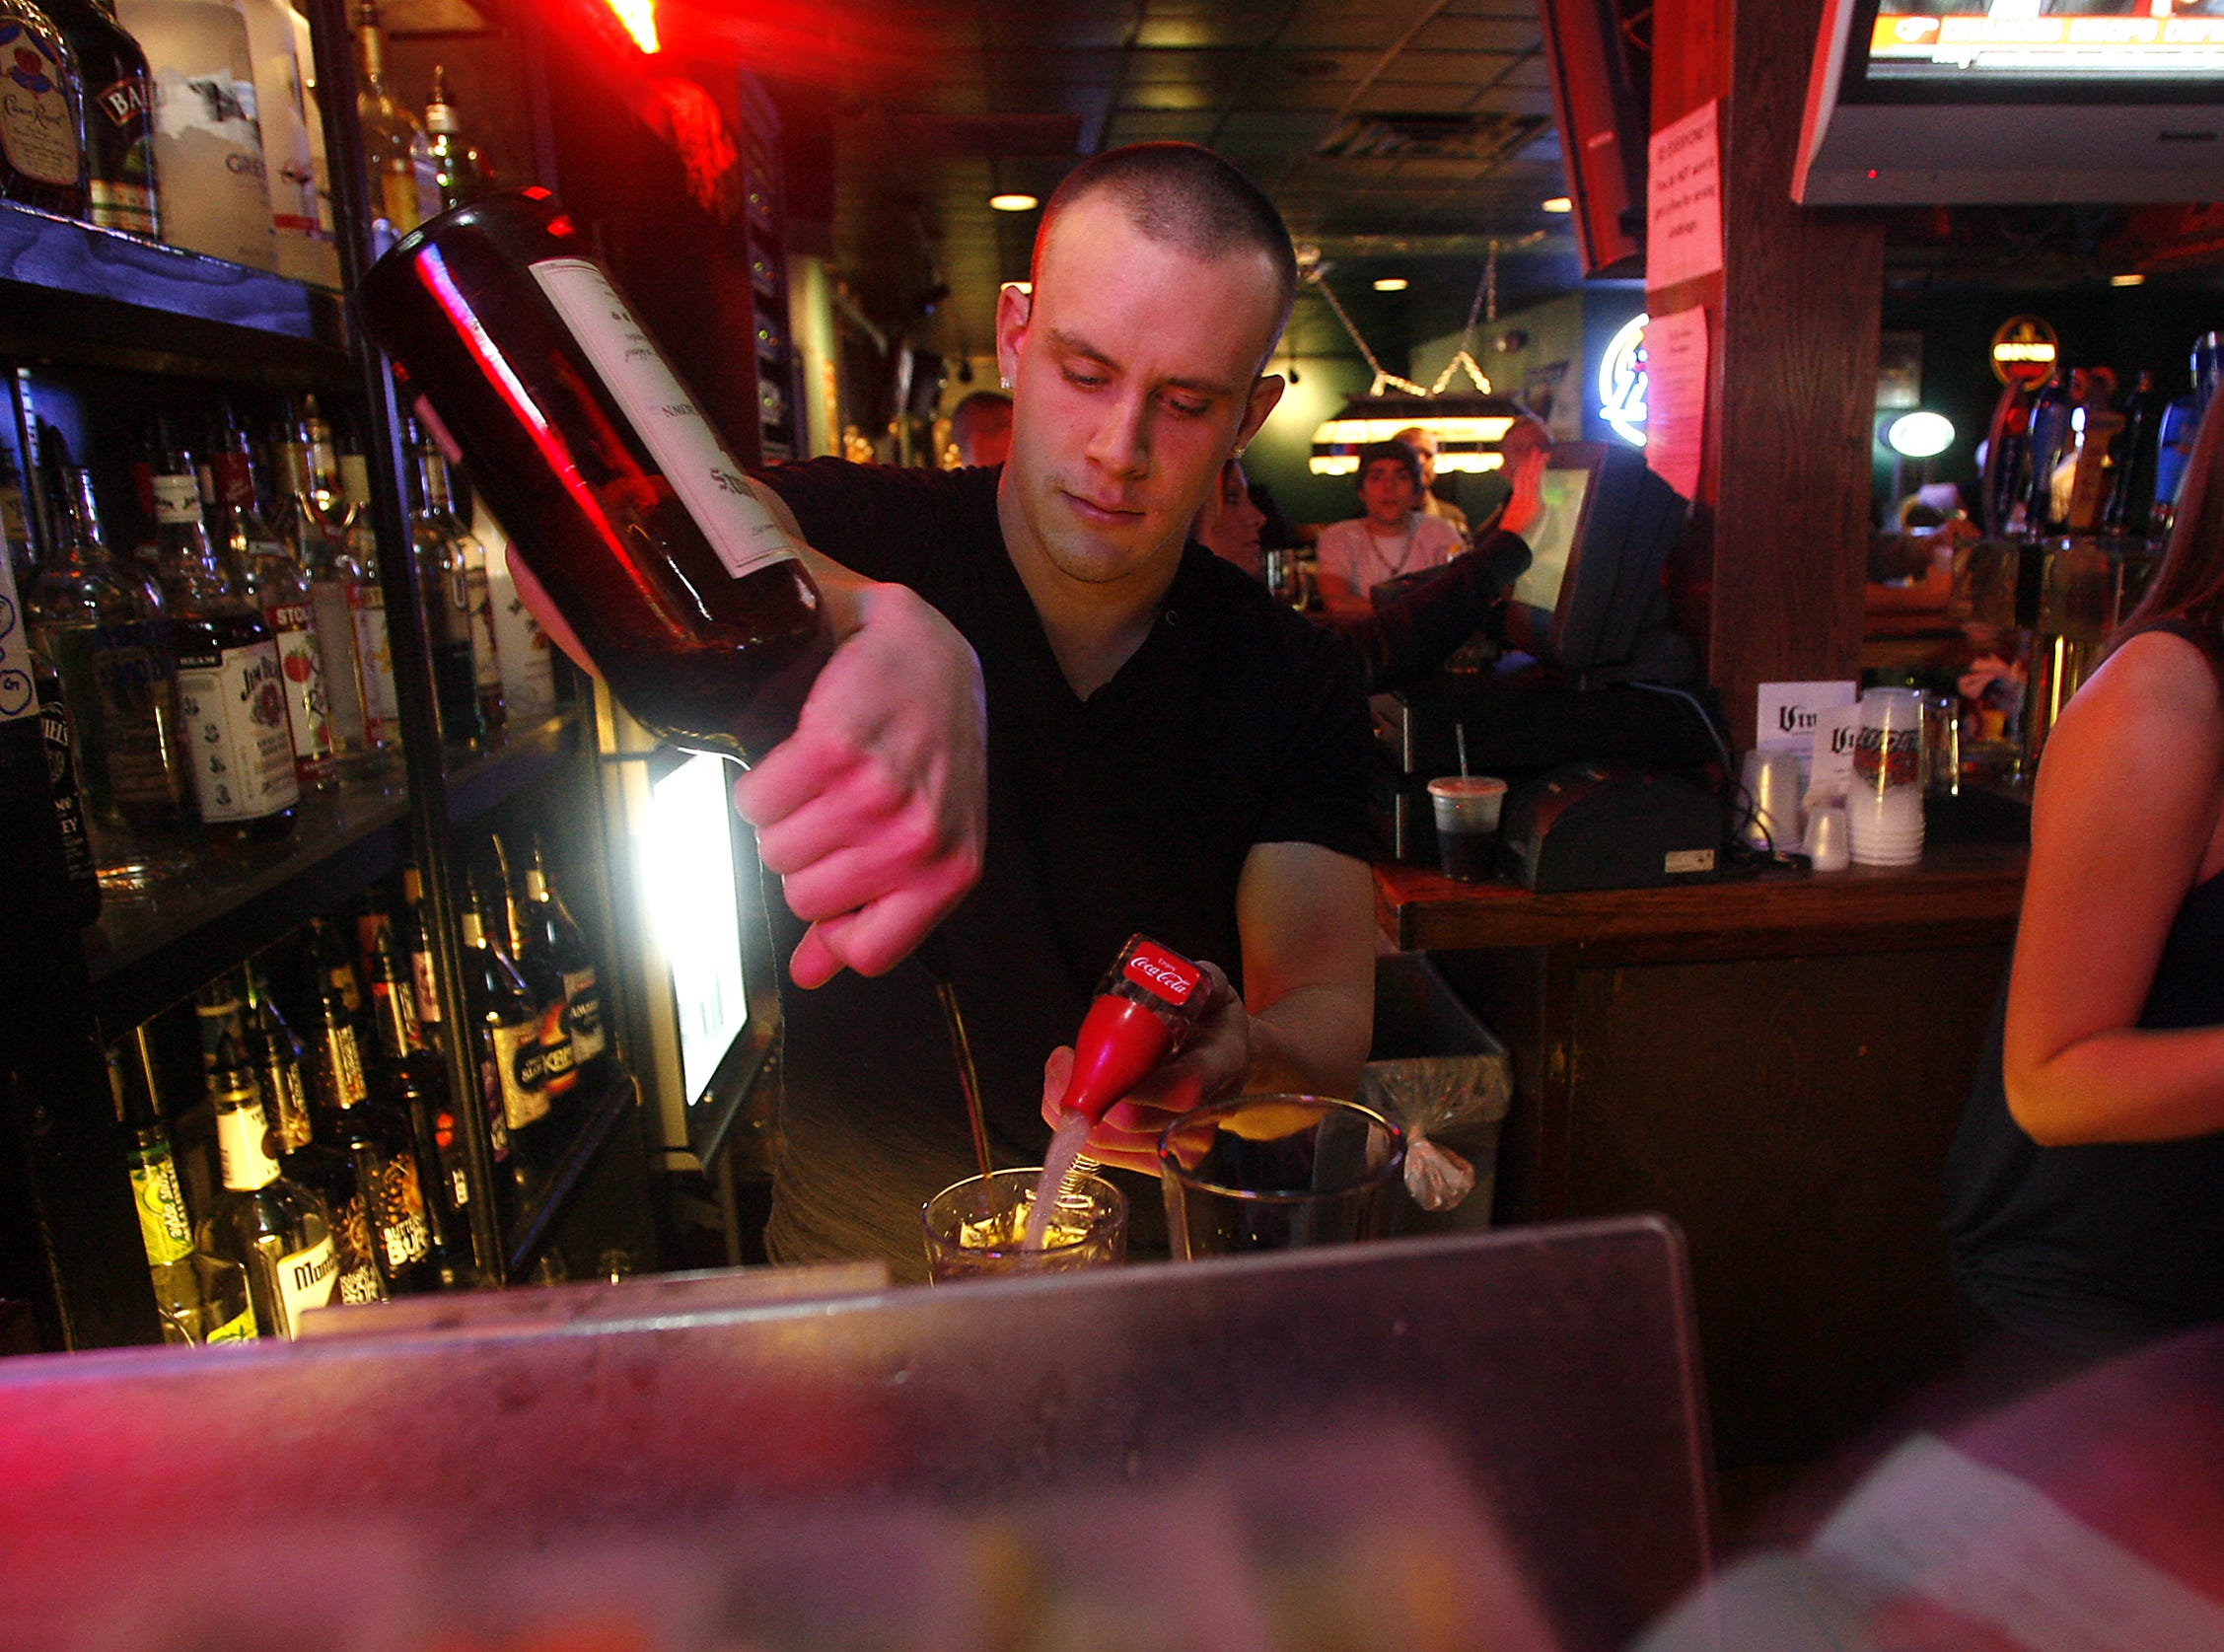 Danny Lake mixes drinks for happy hour customers while tending bar at The Vine, Friday, Dec. 4, 2009, in Iowa City, Iowa.